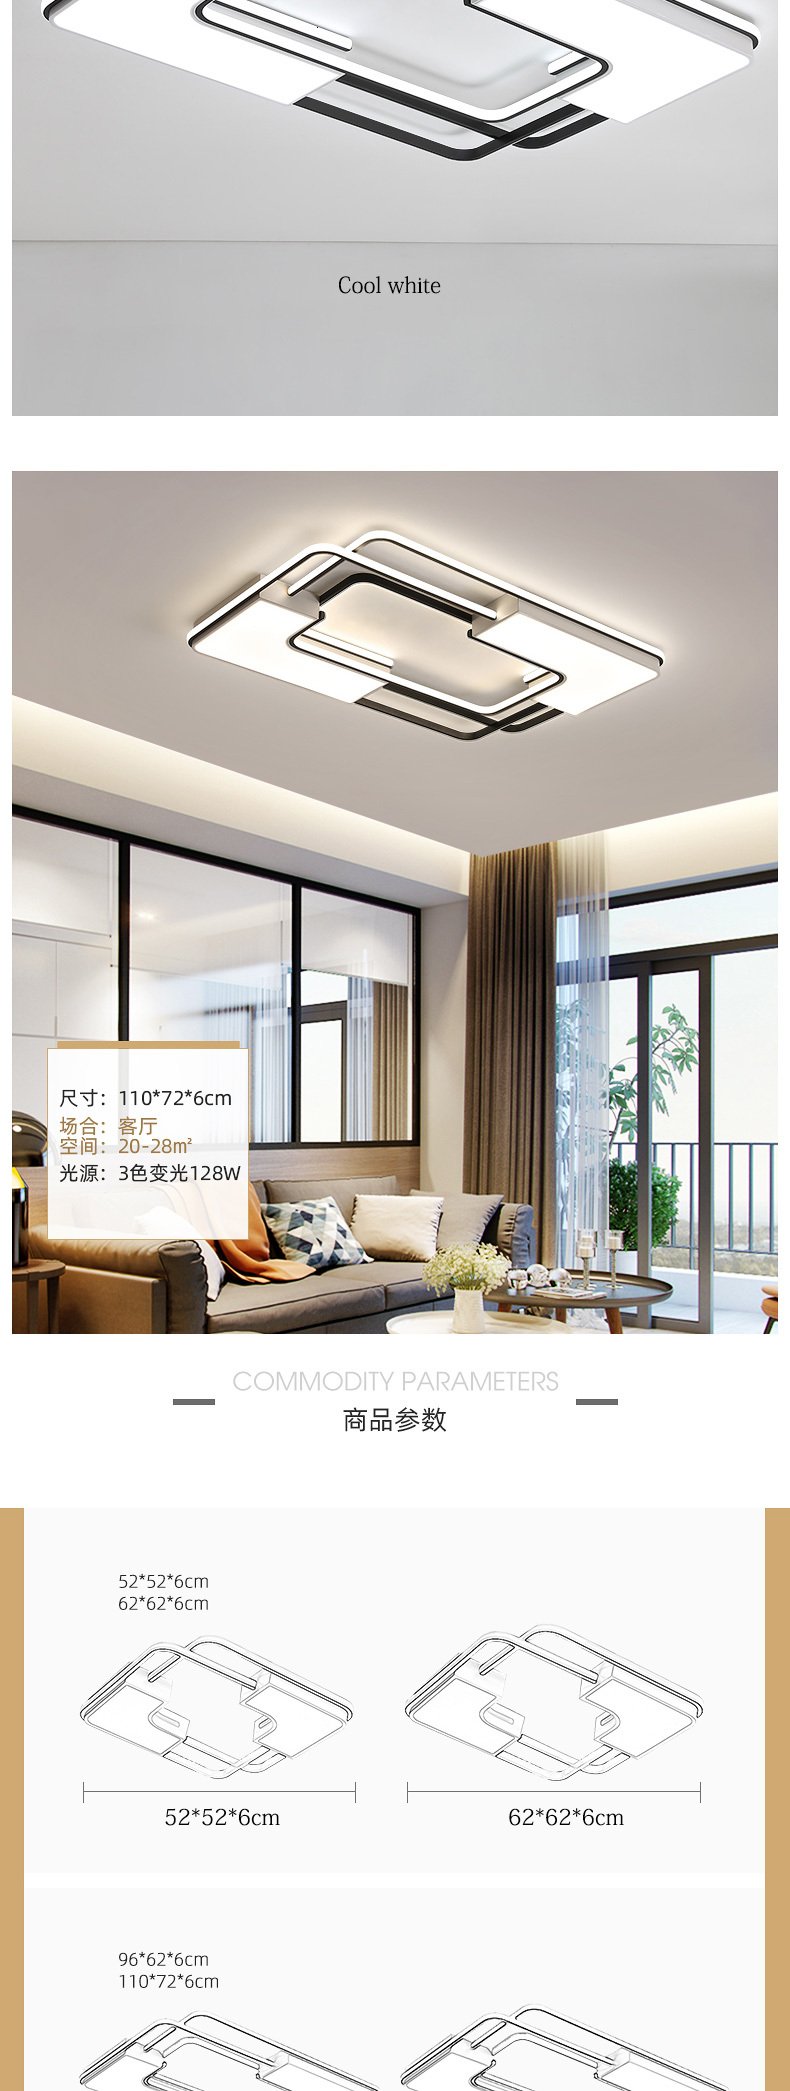 Hd2c3ba7bc81f4eaf8f37bc19927e5fdfk Modern Flush Ceiling Lights | White Ceiling Lights | New Listing Square Modern LED Ceiling Lights For Living Room Bedroom Study Home indoor Acrylic Black White Ceiling Lamp Fixture 001